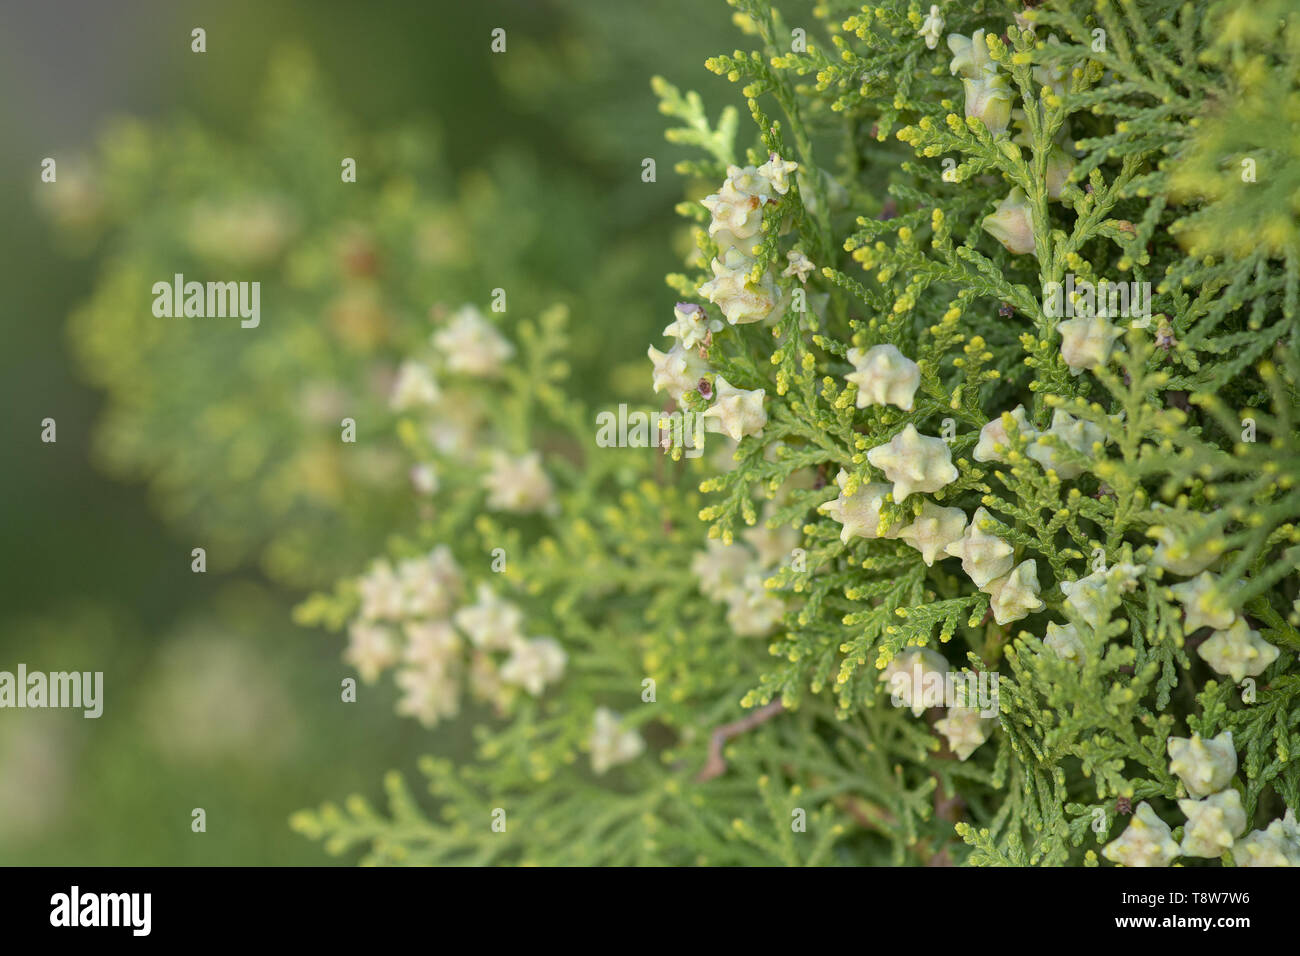 Cedar vegetation closeup with white little berries or fruits focus foreground. - Stock Image